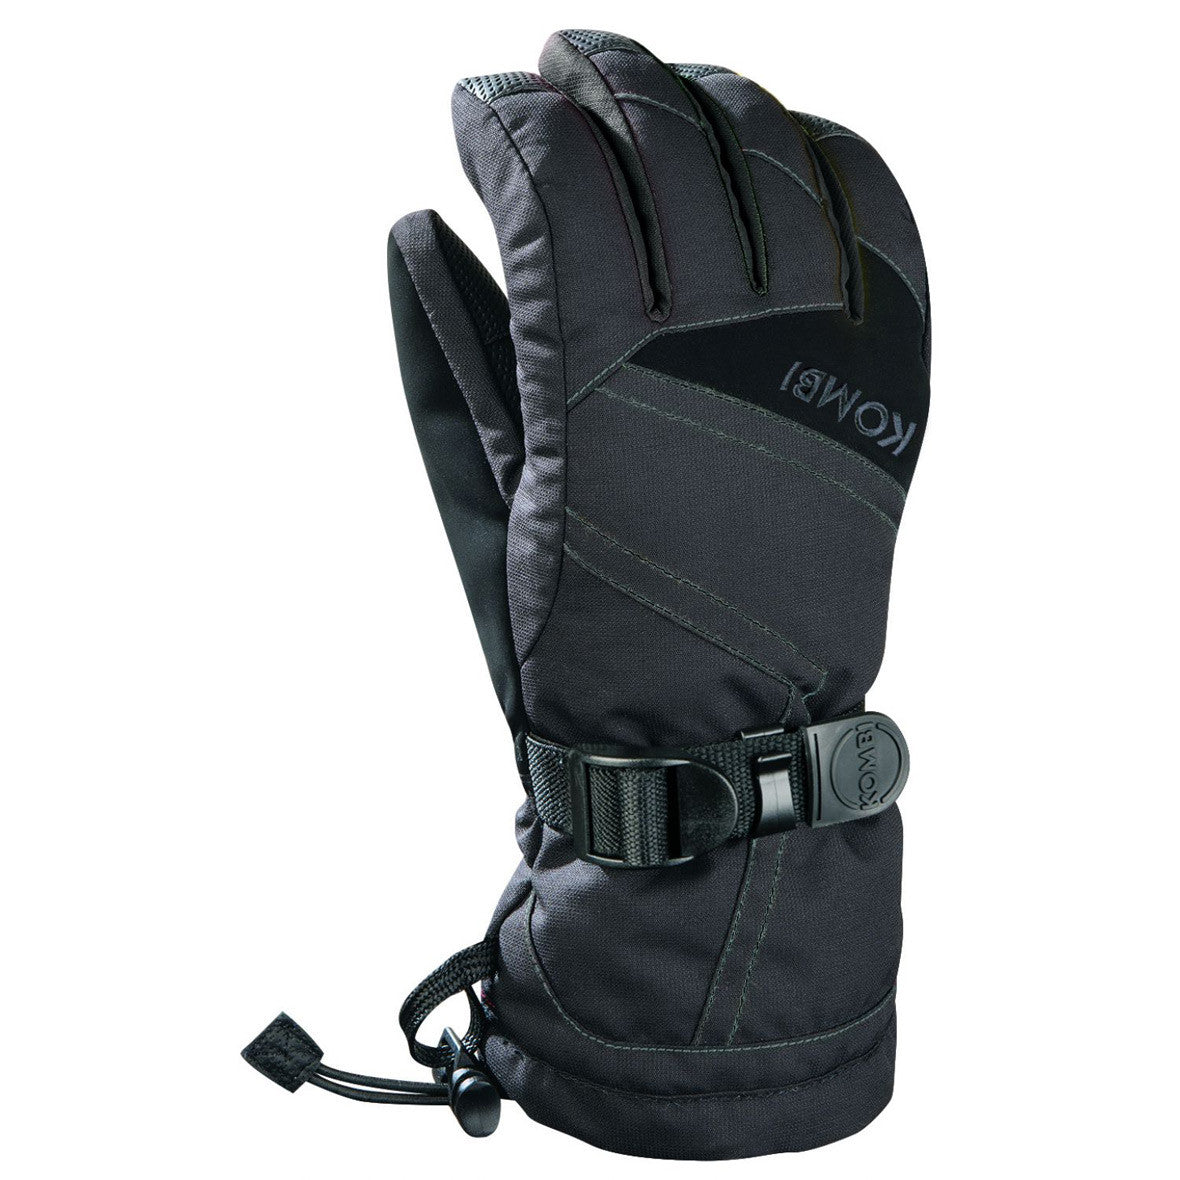 Kombi The Original Glove - Men's